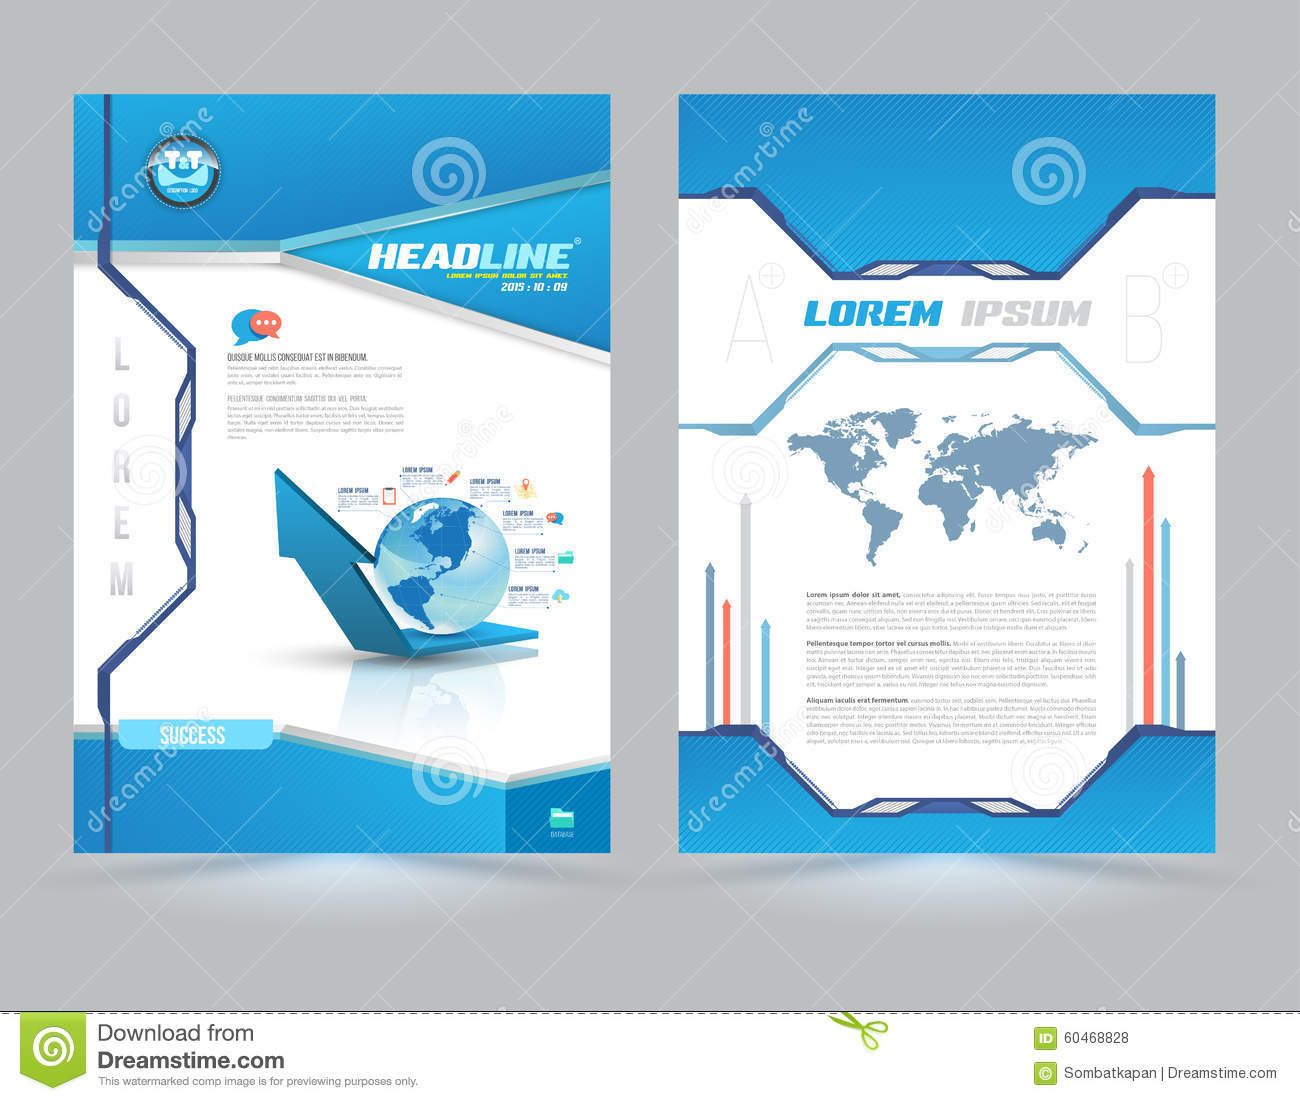 Report Cover Page Templates Free Download Expenses Claim Template Business  Letterhead Layout Technology Style Vector  Free Report Cover Page Template